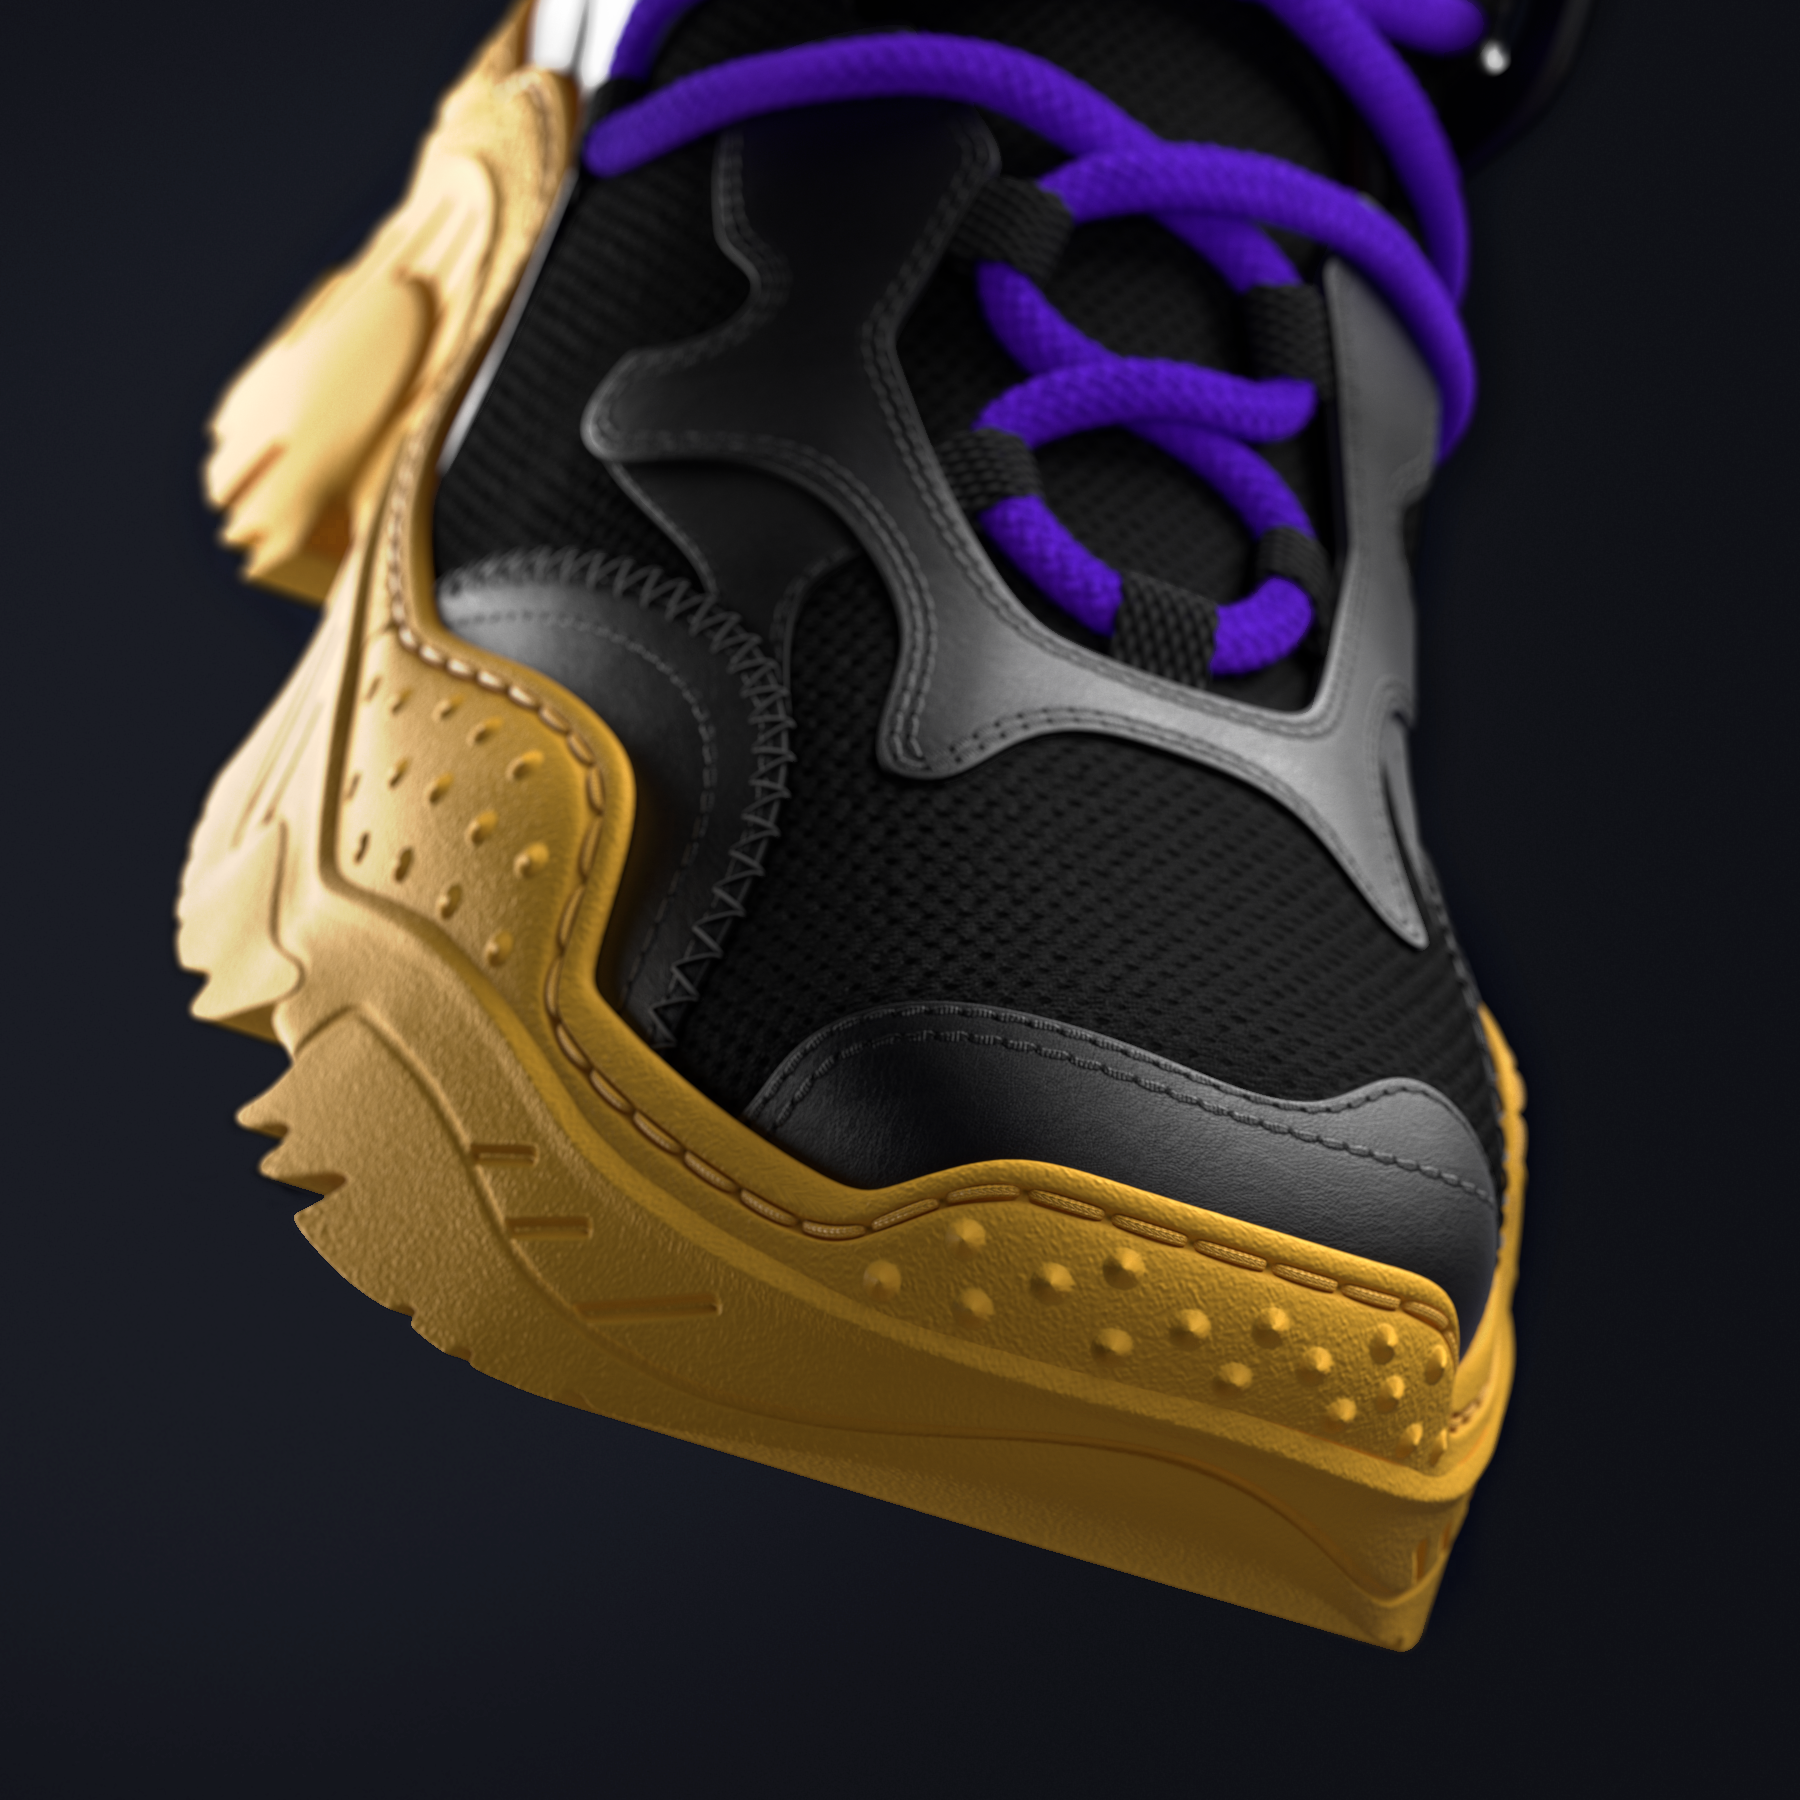 Sneaker's front view.